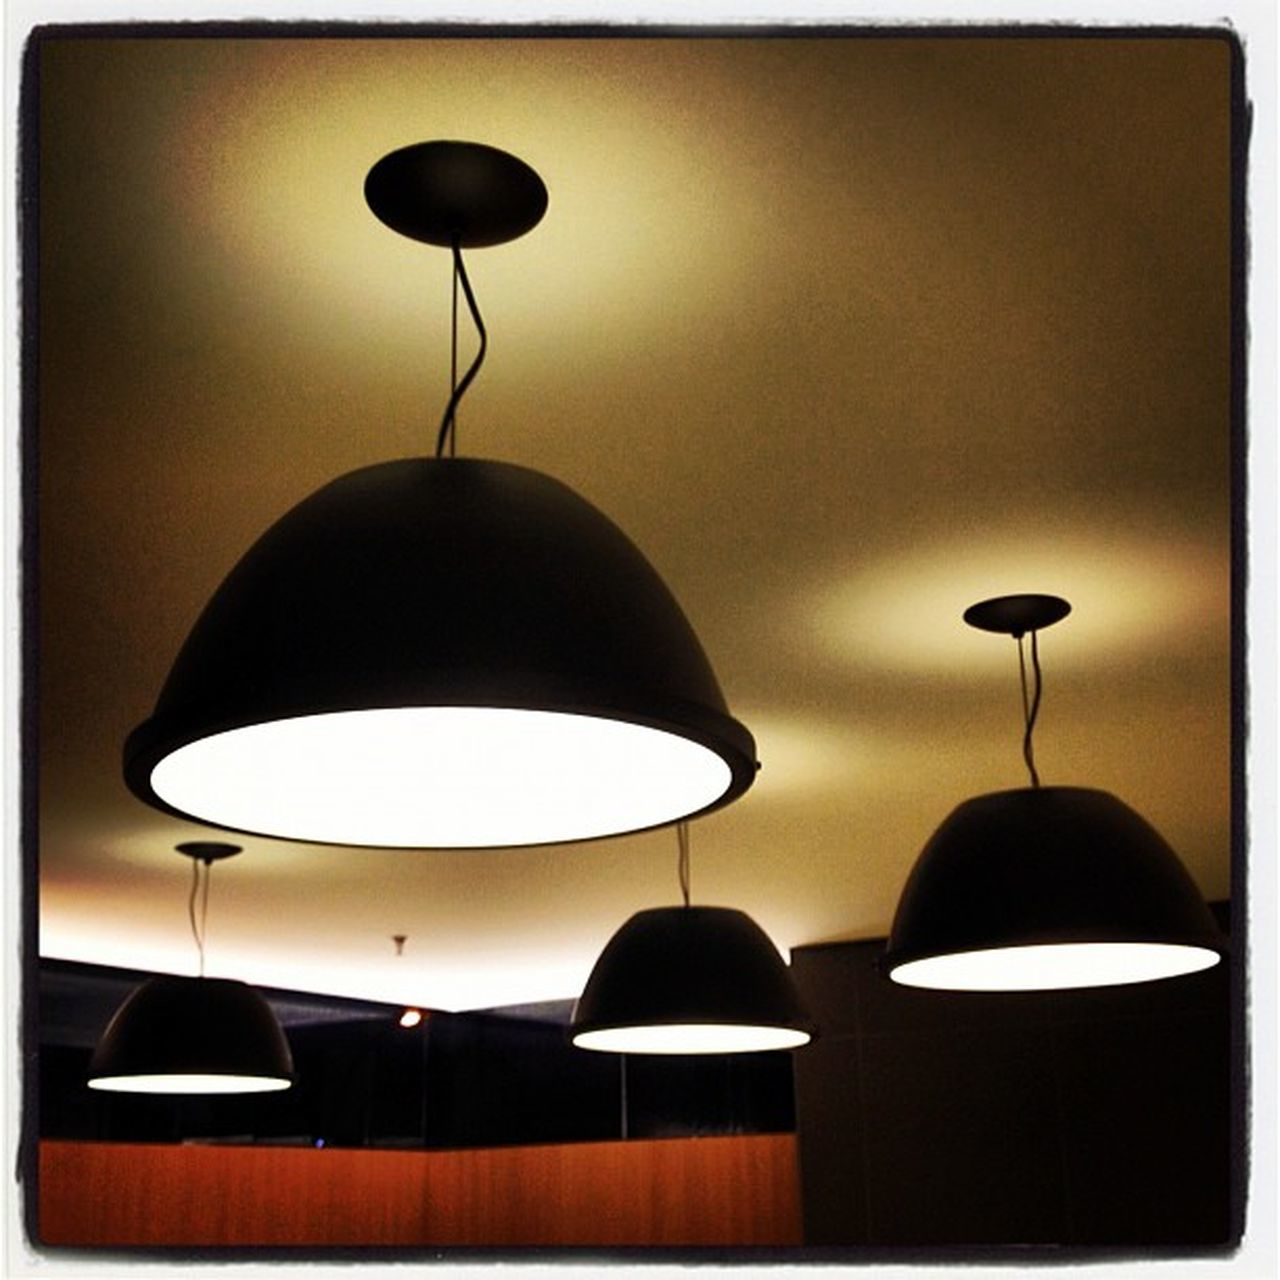 hanging, lighting equipment, electric lamp, lamp shade, illuminated, indoors, no people, electricity